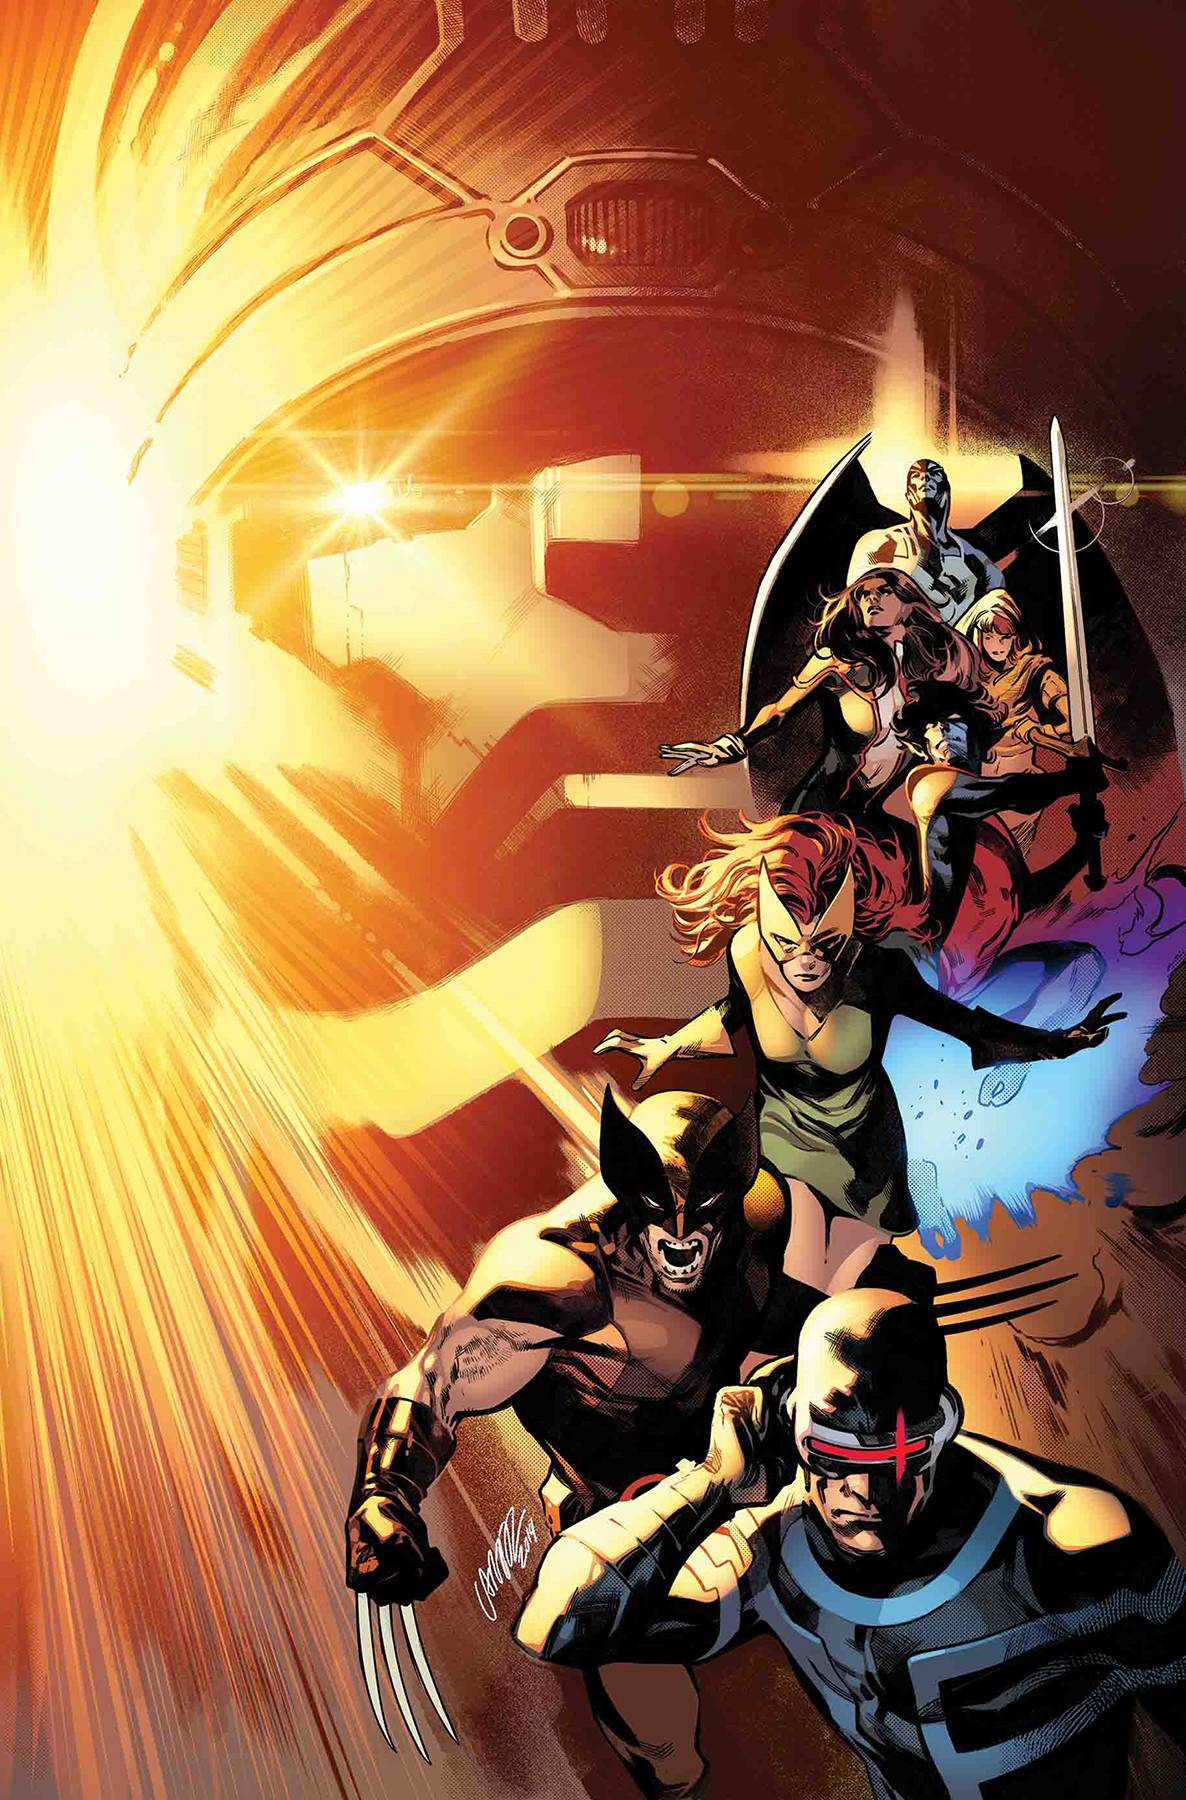 HOUSE OF X #3 (OF 6)